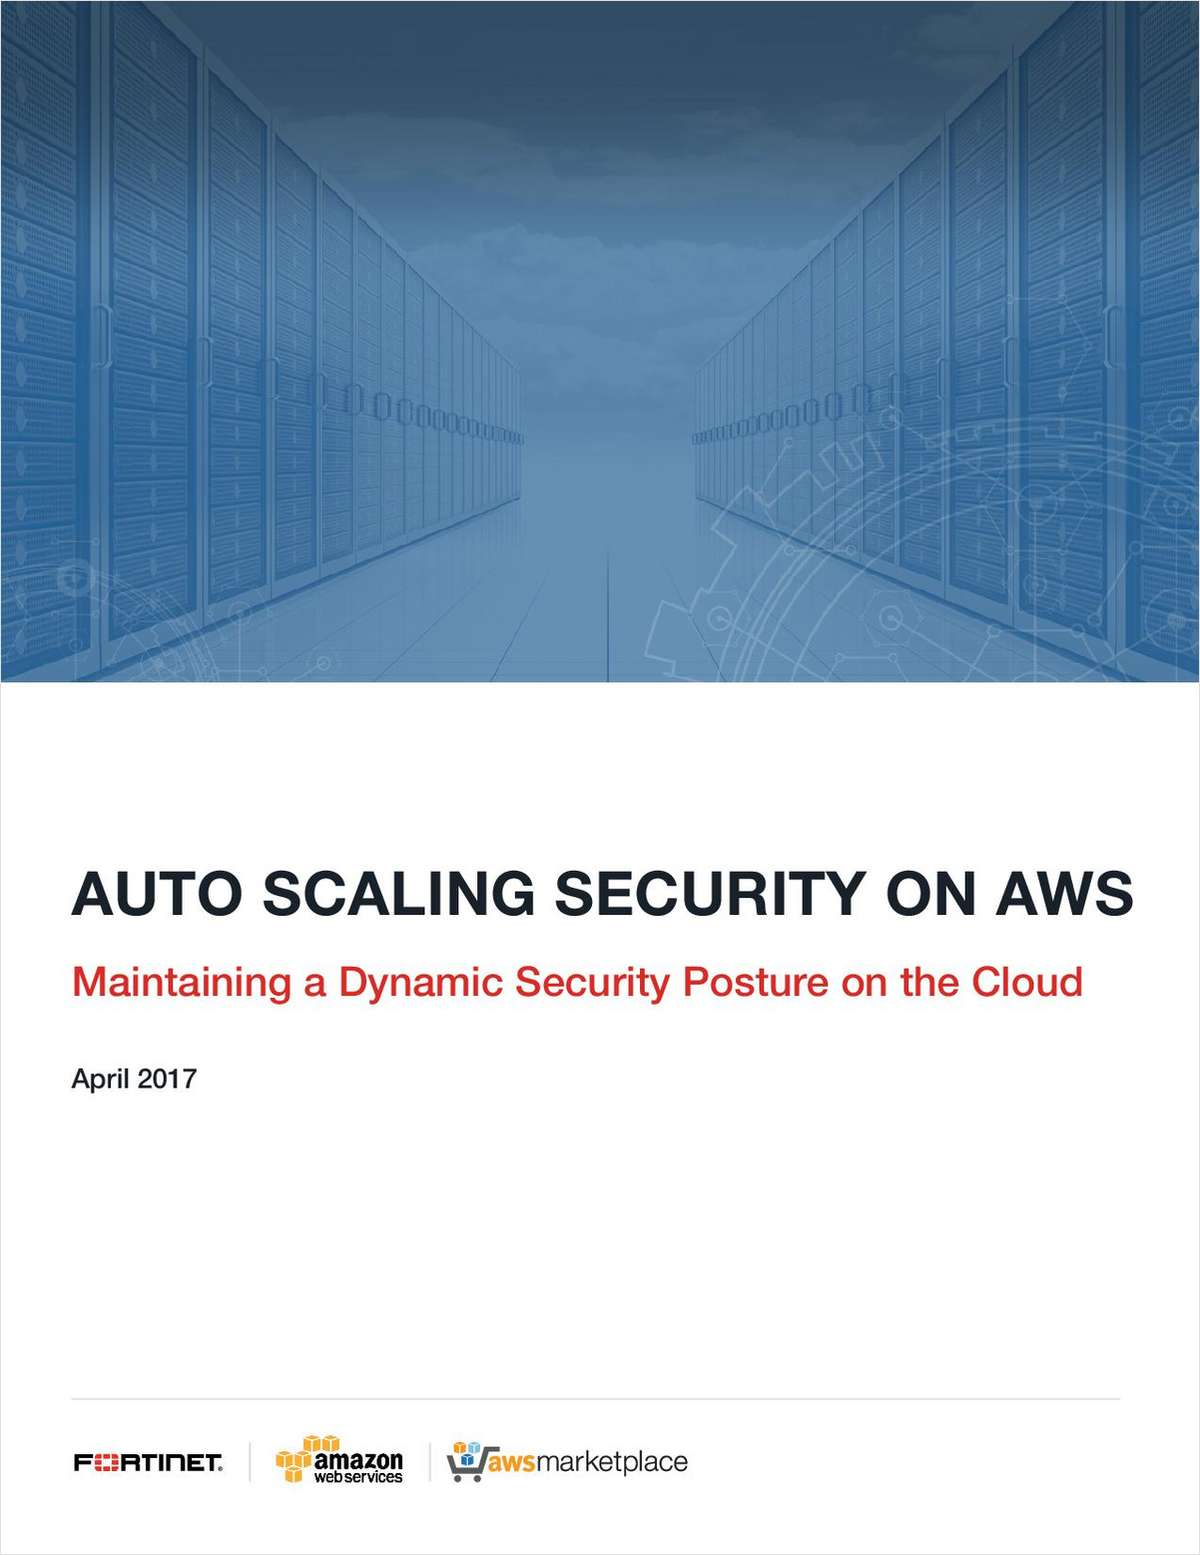 Auto Scaling Security on AWS